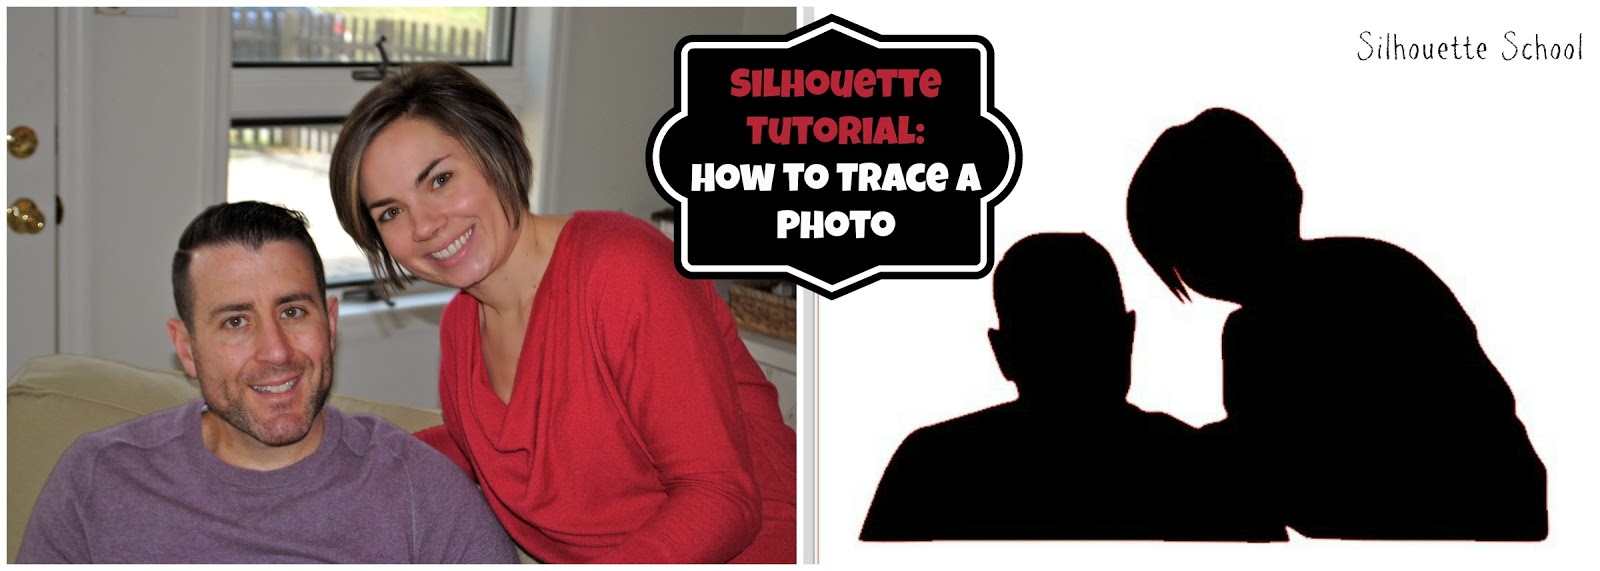 Silhouette tutorial, beginners, trace photo